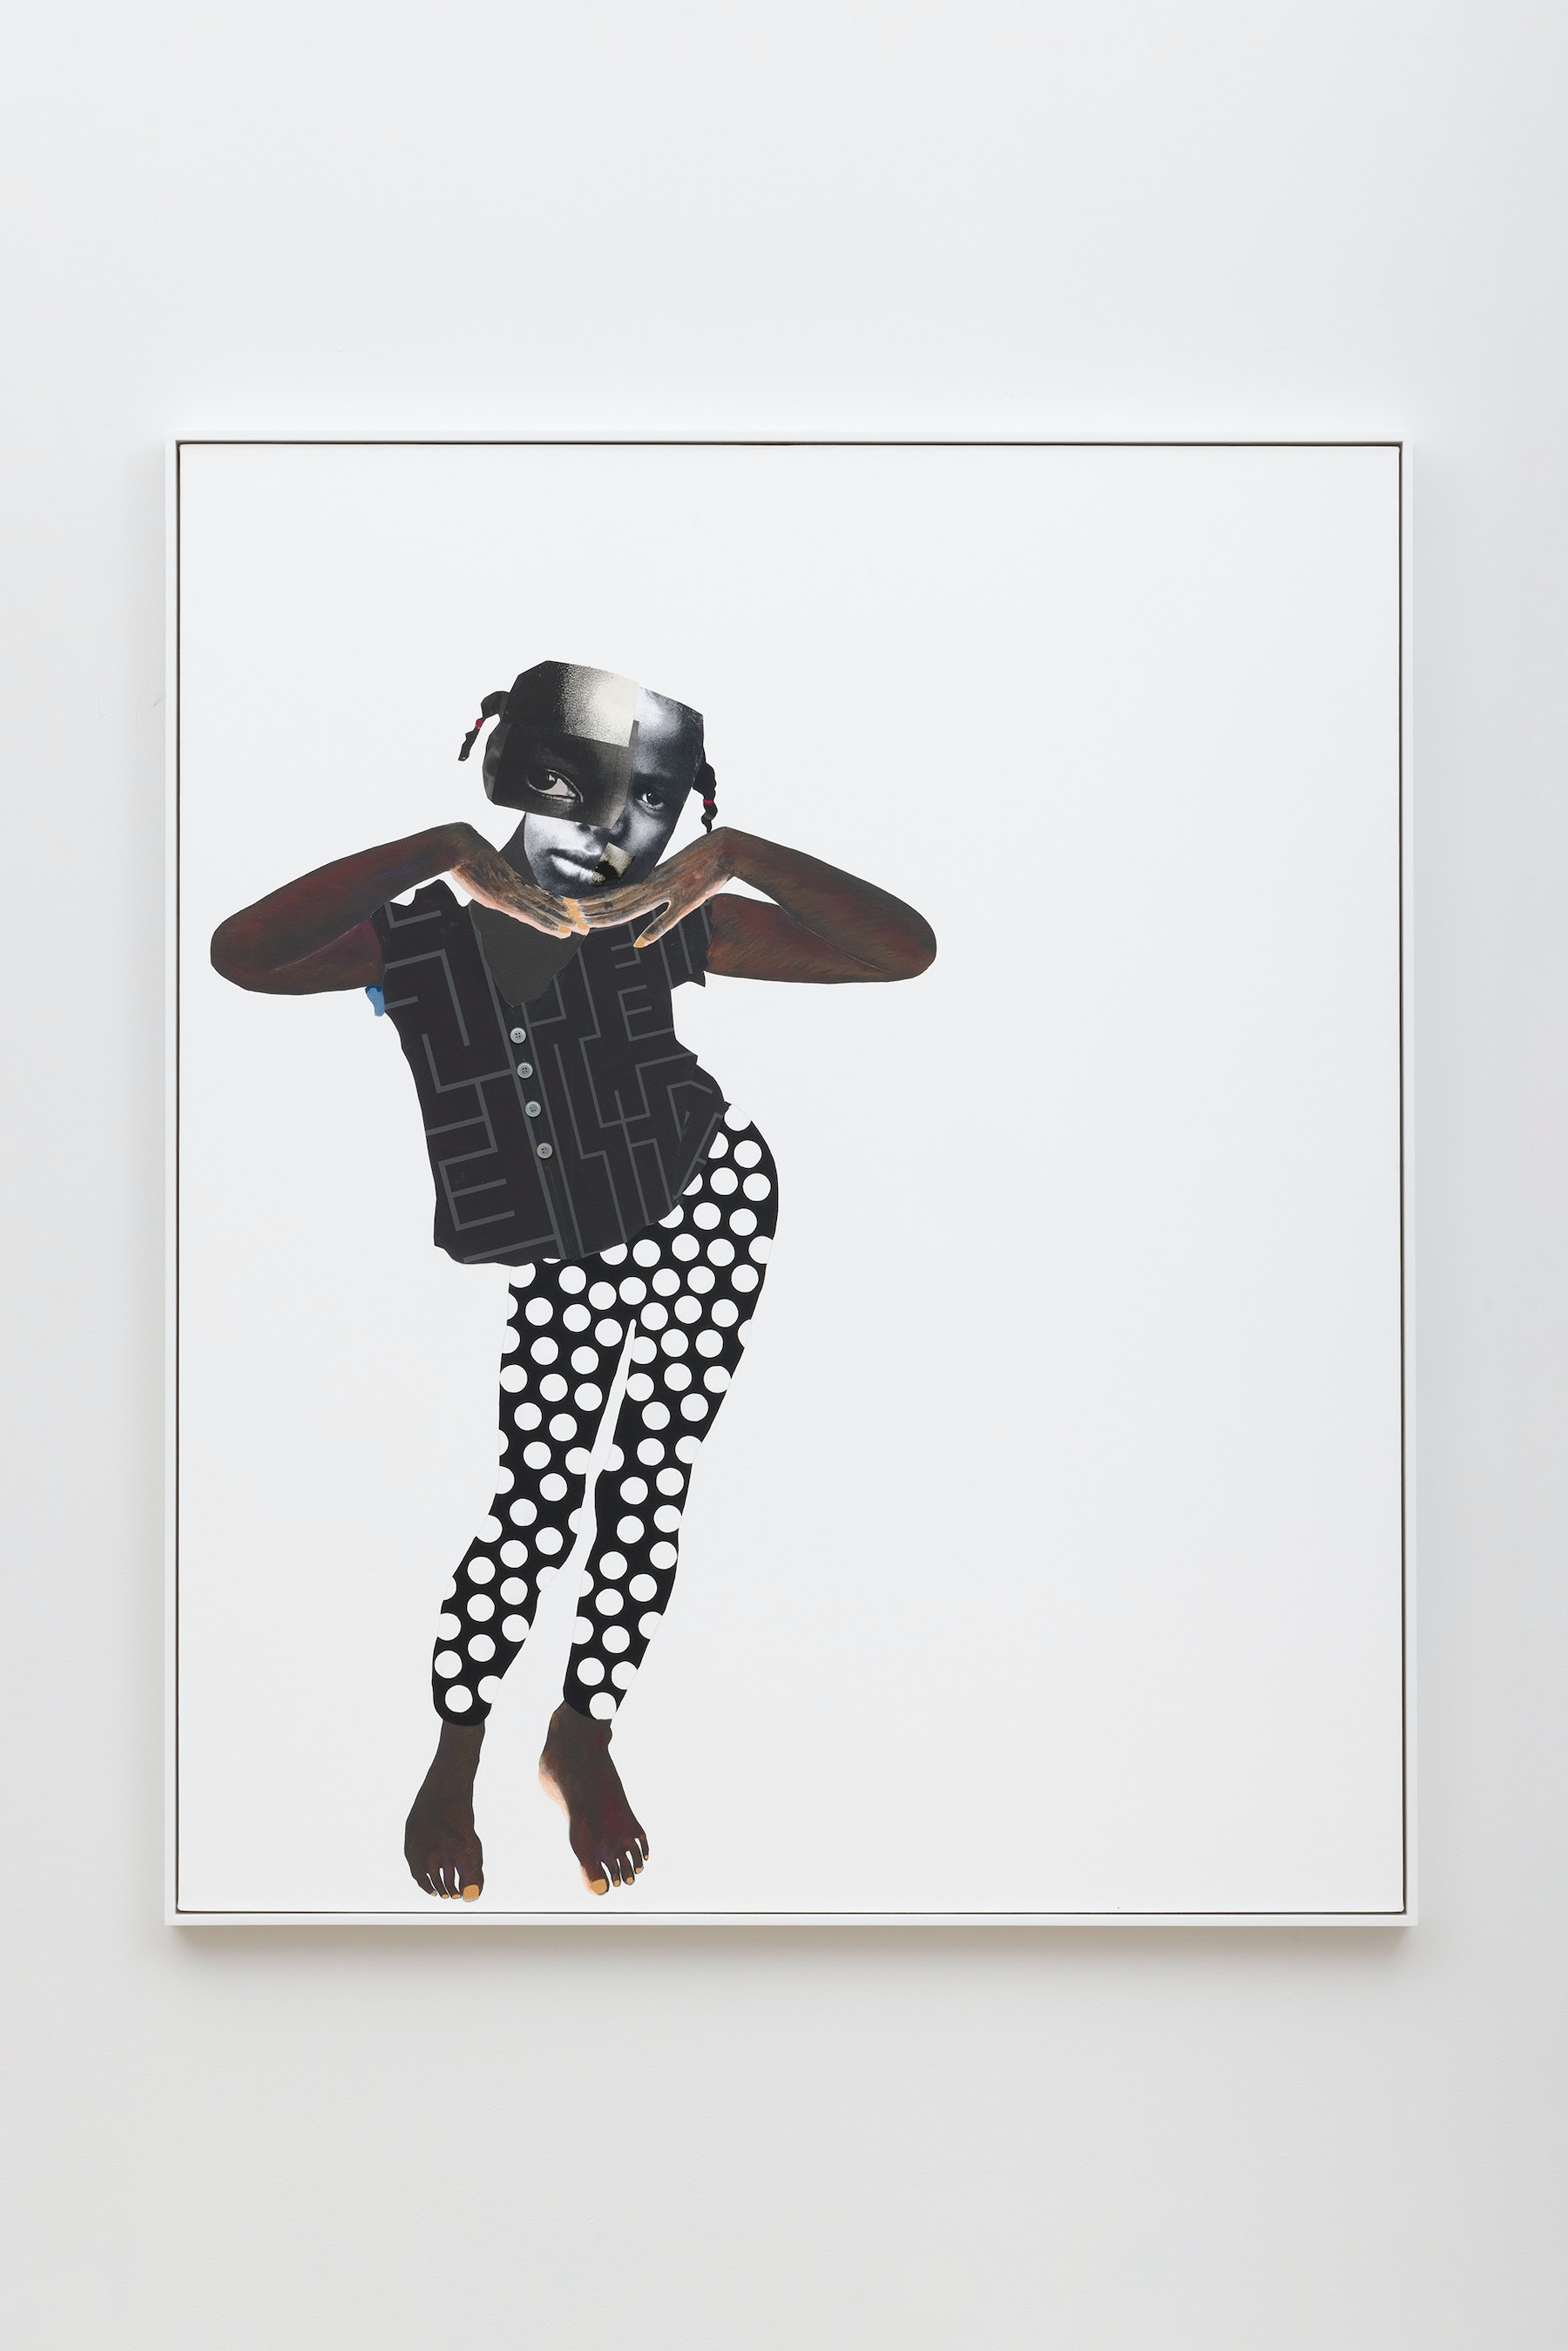 """Deborah Roberts """"Spell bound,"""" 2021 Mixed media collage on canvas 72"""" x 60"""" [HxW] (182.88 x 152.4 cm); 73 ¹⁄₂"""" x 61 ¹⁄₂"""" x 2 ¹⁄₄"""" [HxWxD] (186.69 x 156.21 x 5.71 cm) framed Inventory #ROB452 Courtesy of the artist and Vielmetter Los Angeles Photo credit: Jeff McLane"""